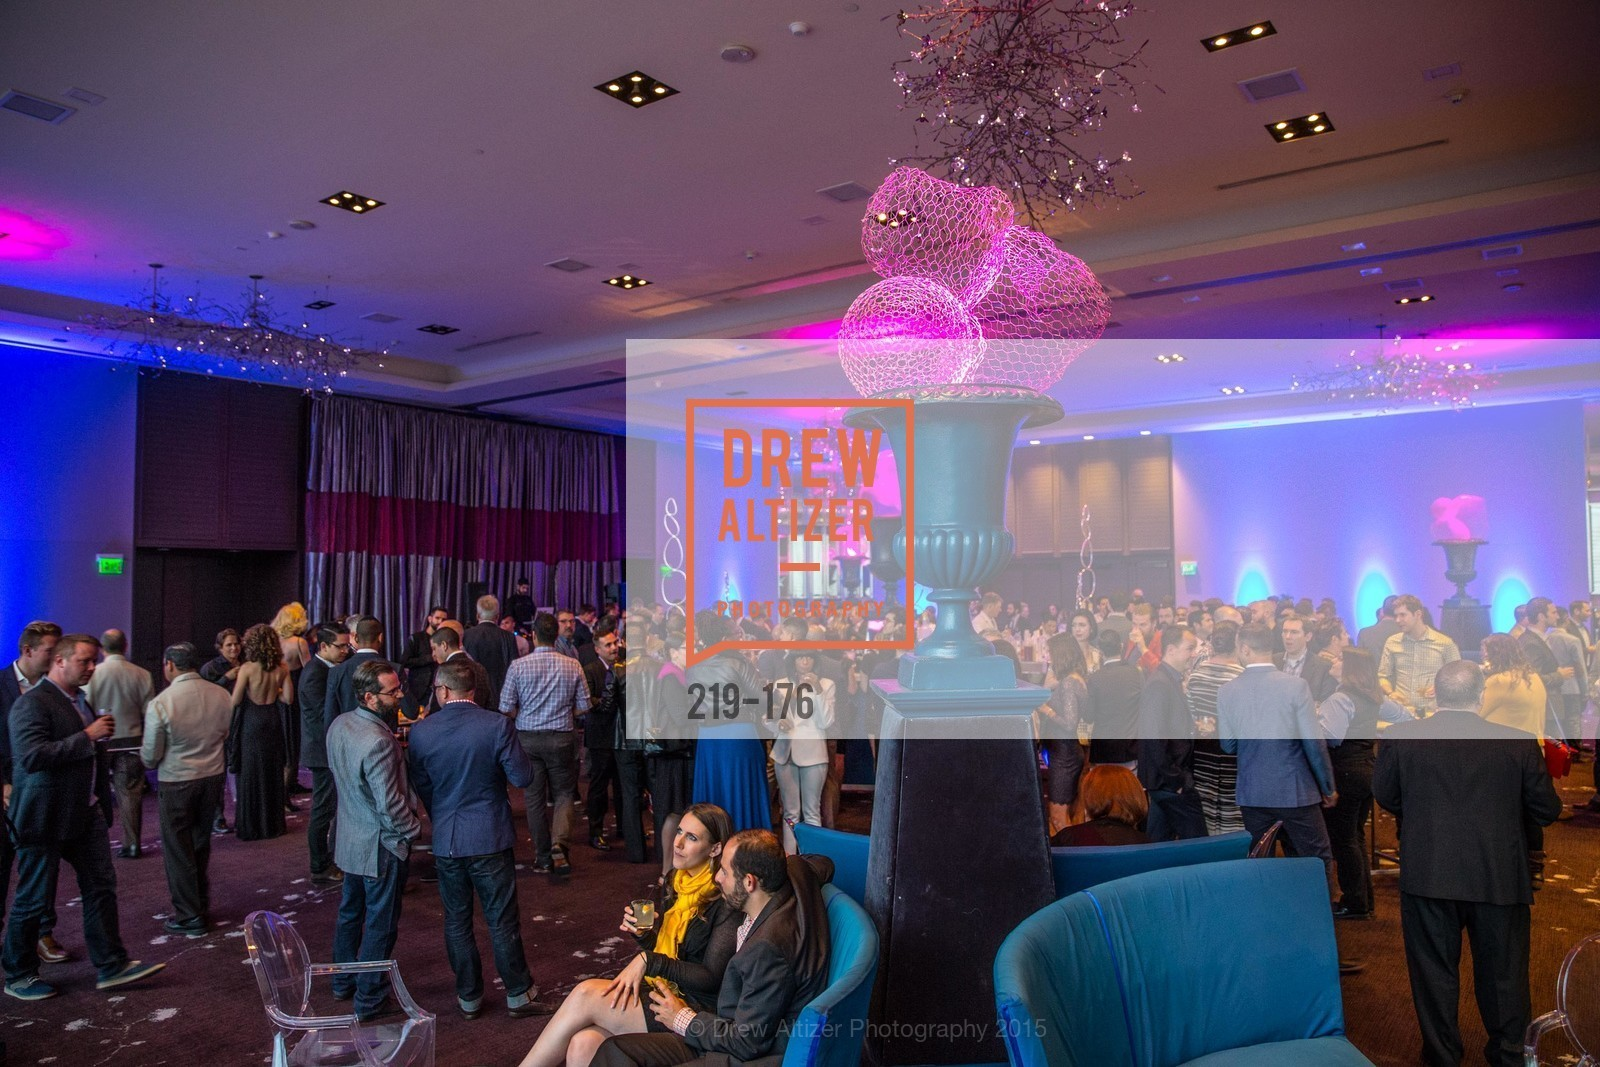 Atmosphere, VIP Pride Celebration 2015, St. Regis, June 18th, 2015,Drew Altizer, Drew Altizer Photography, full-service event agency, private events, San Francisco photographer, photographer California